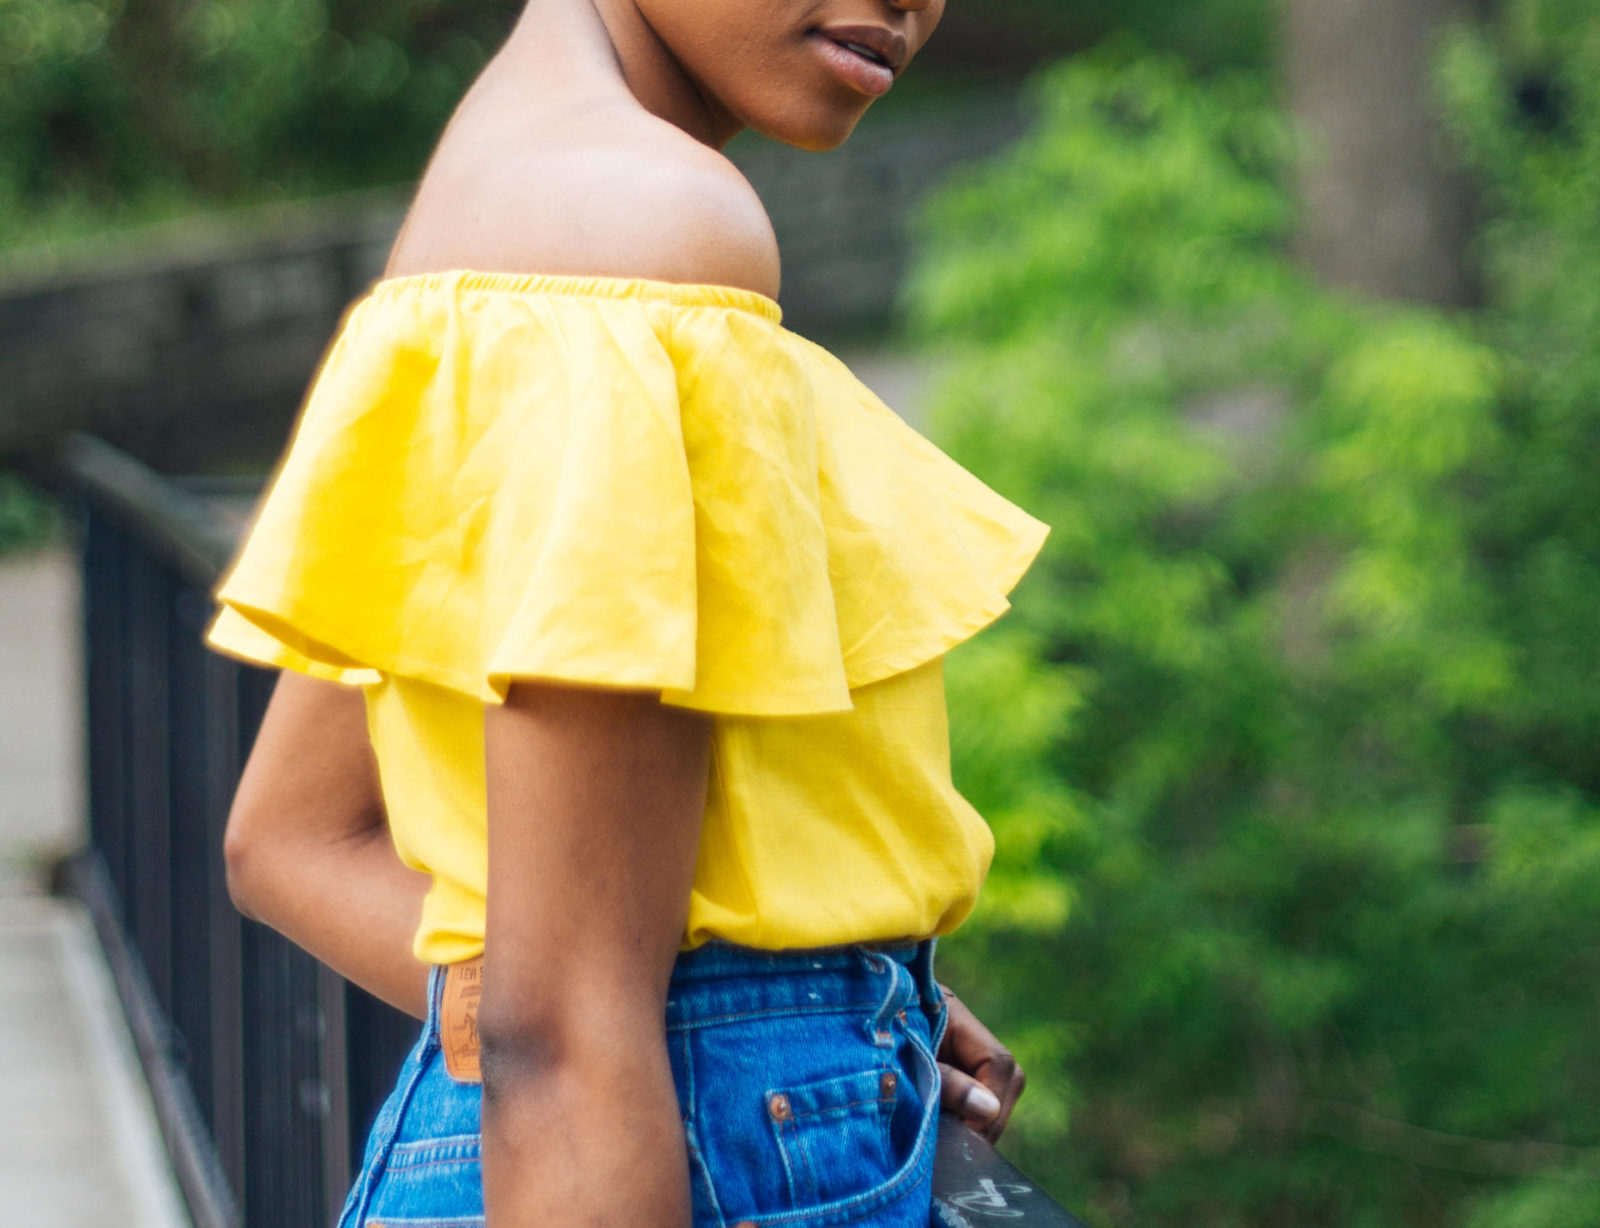 Offshoulfder_ruffle-Top_pix-elatedpassion.com